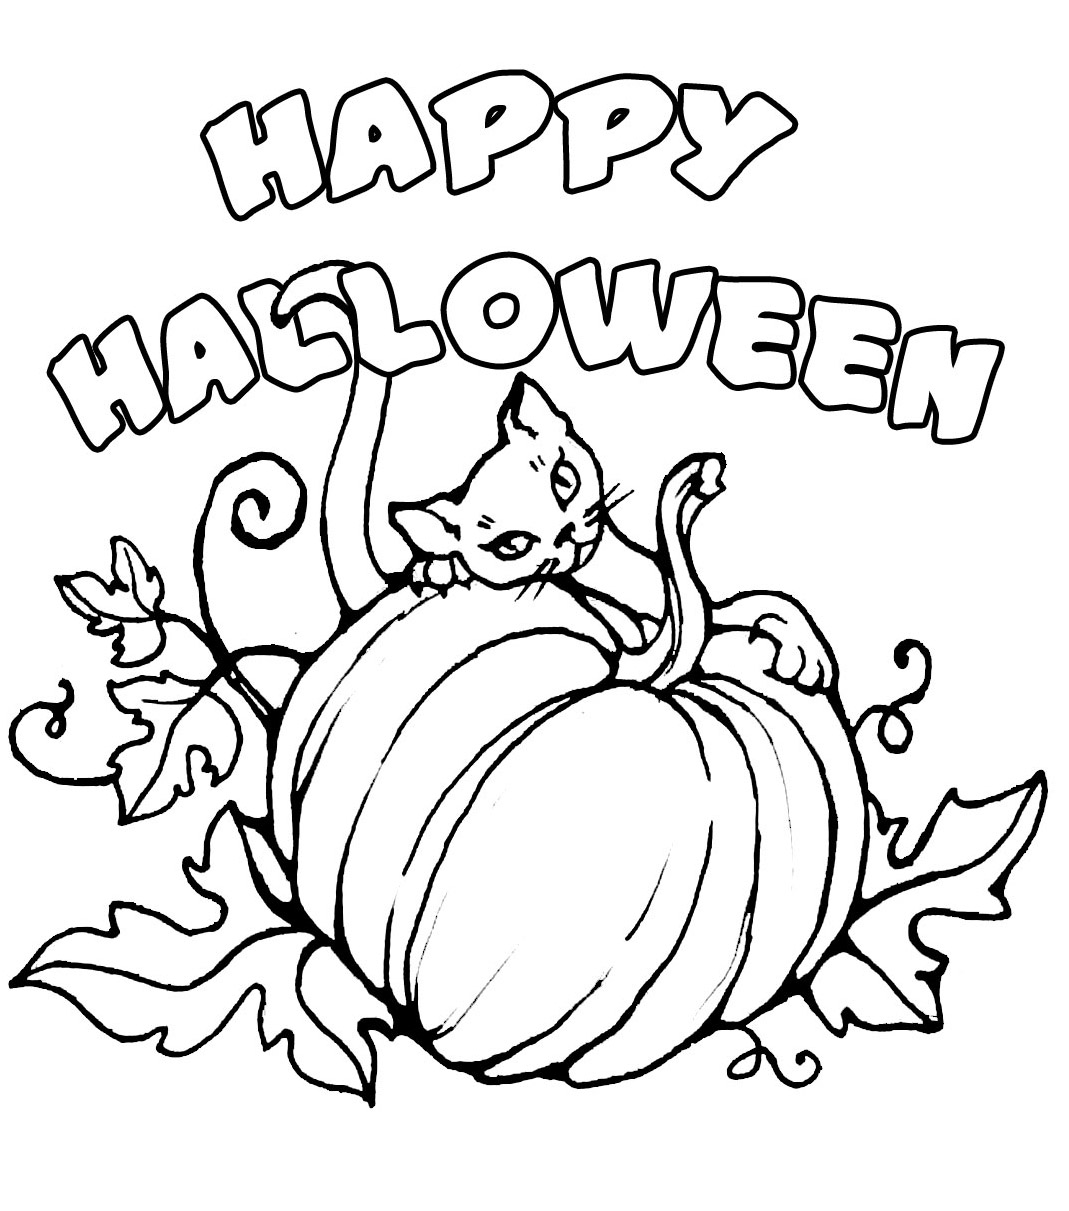 Happy Halloween's Day 2020 Wishes Quotes Messages Songs ...